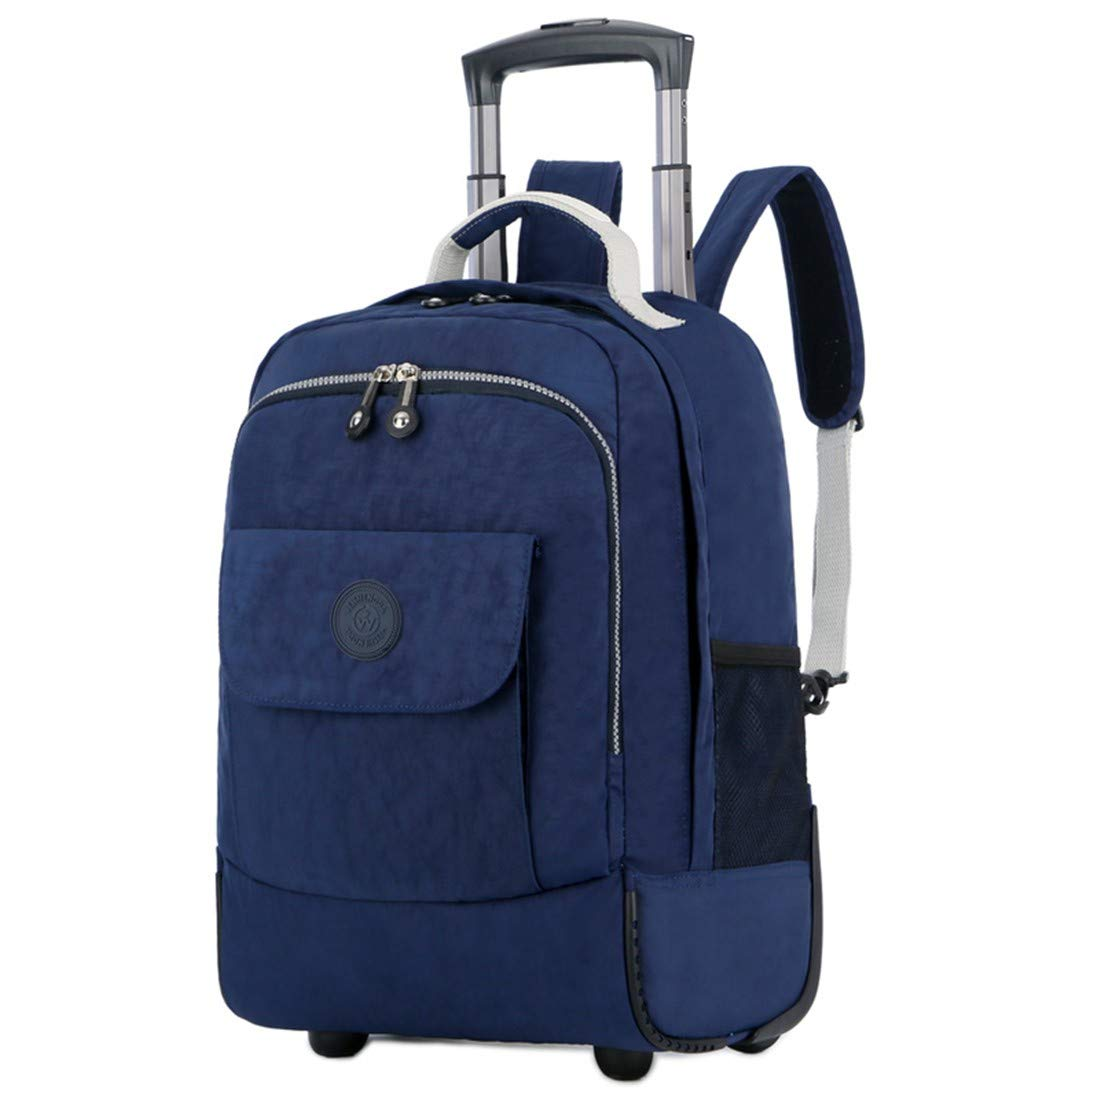 CEQT Rolling Luggage Travel Backpack Hombro Spinner Mochilas Ruedas de Gran Capacidad para Maletas Trolley Carry On Bag, Azul: Amazon.es: Electrónica